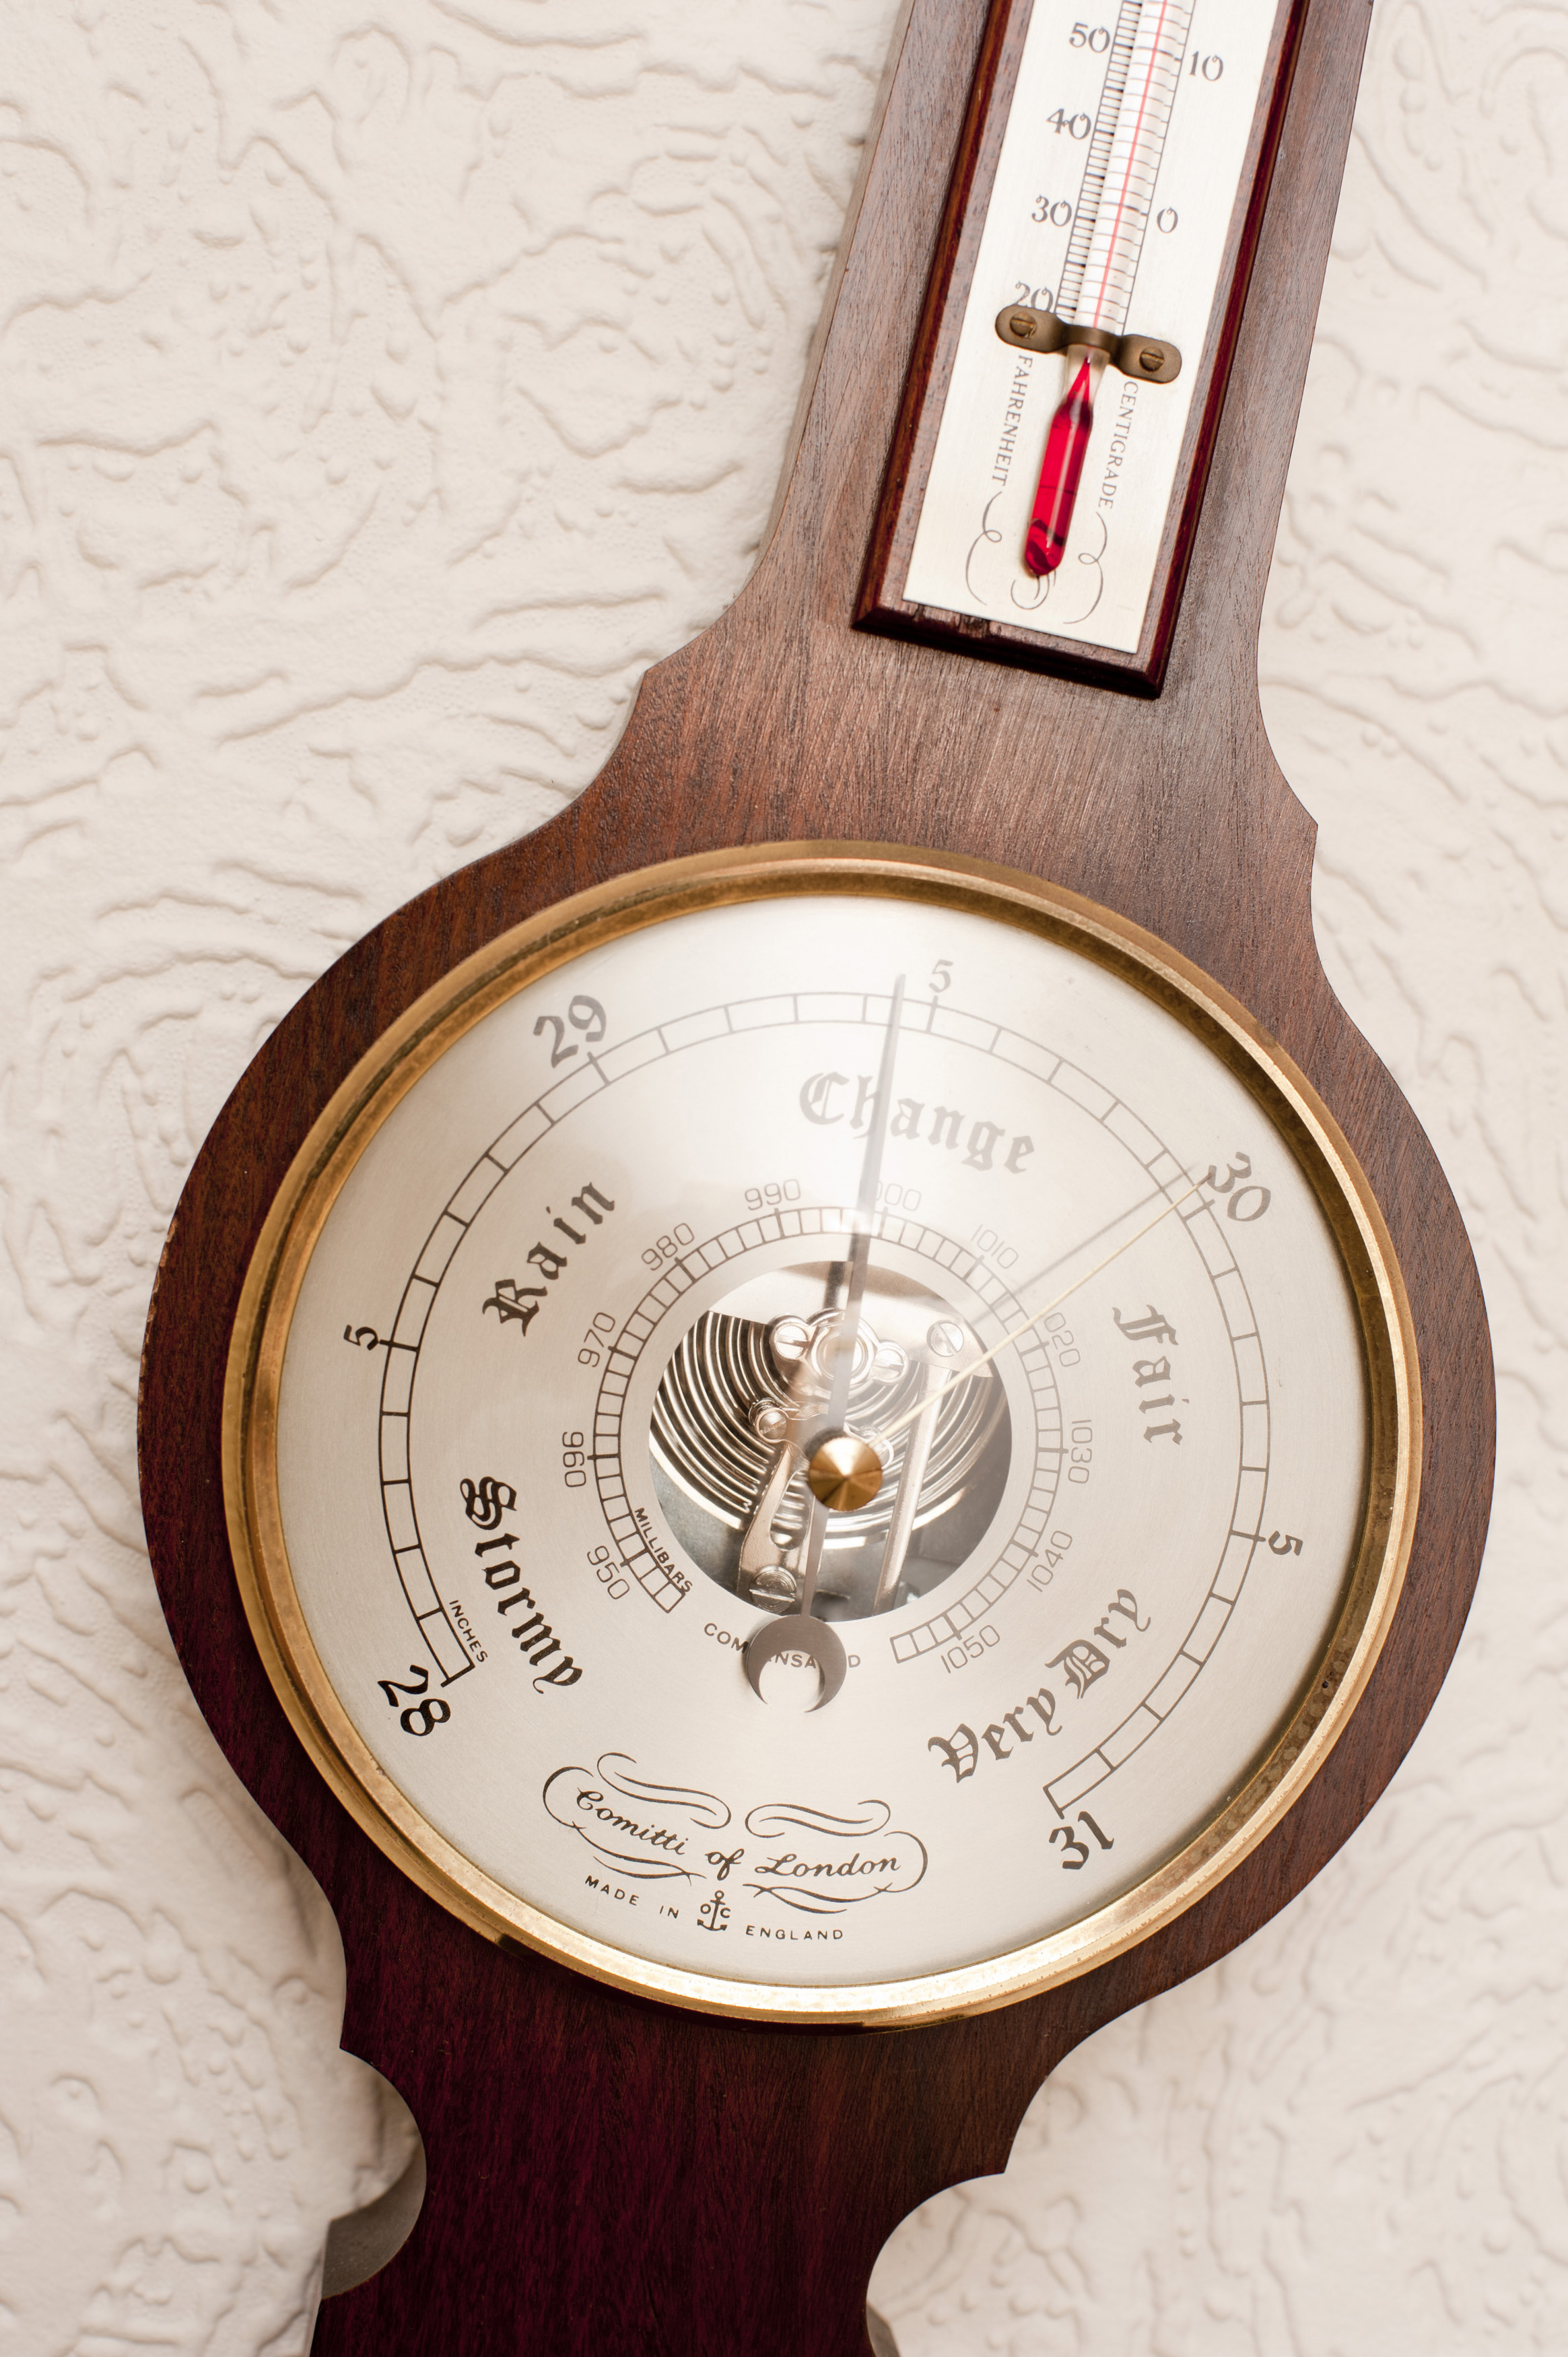 Modern aneroid barometer for measuring changes in atmospheric pressure resulting in changes in the weather, close up detail of the glass dial and needle